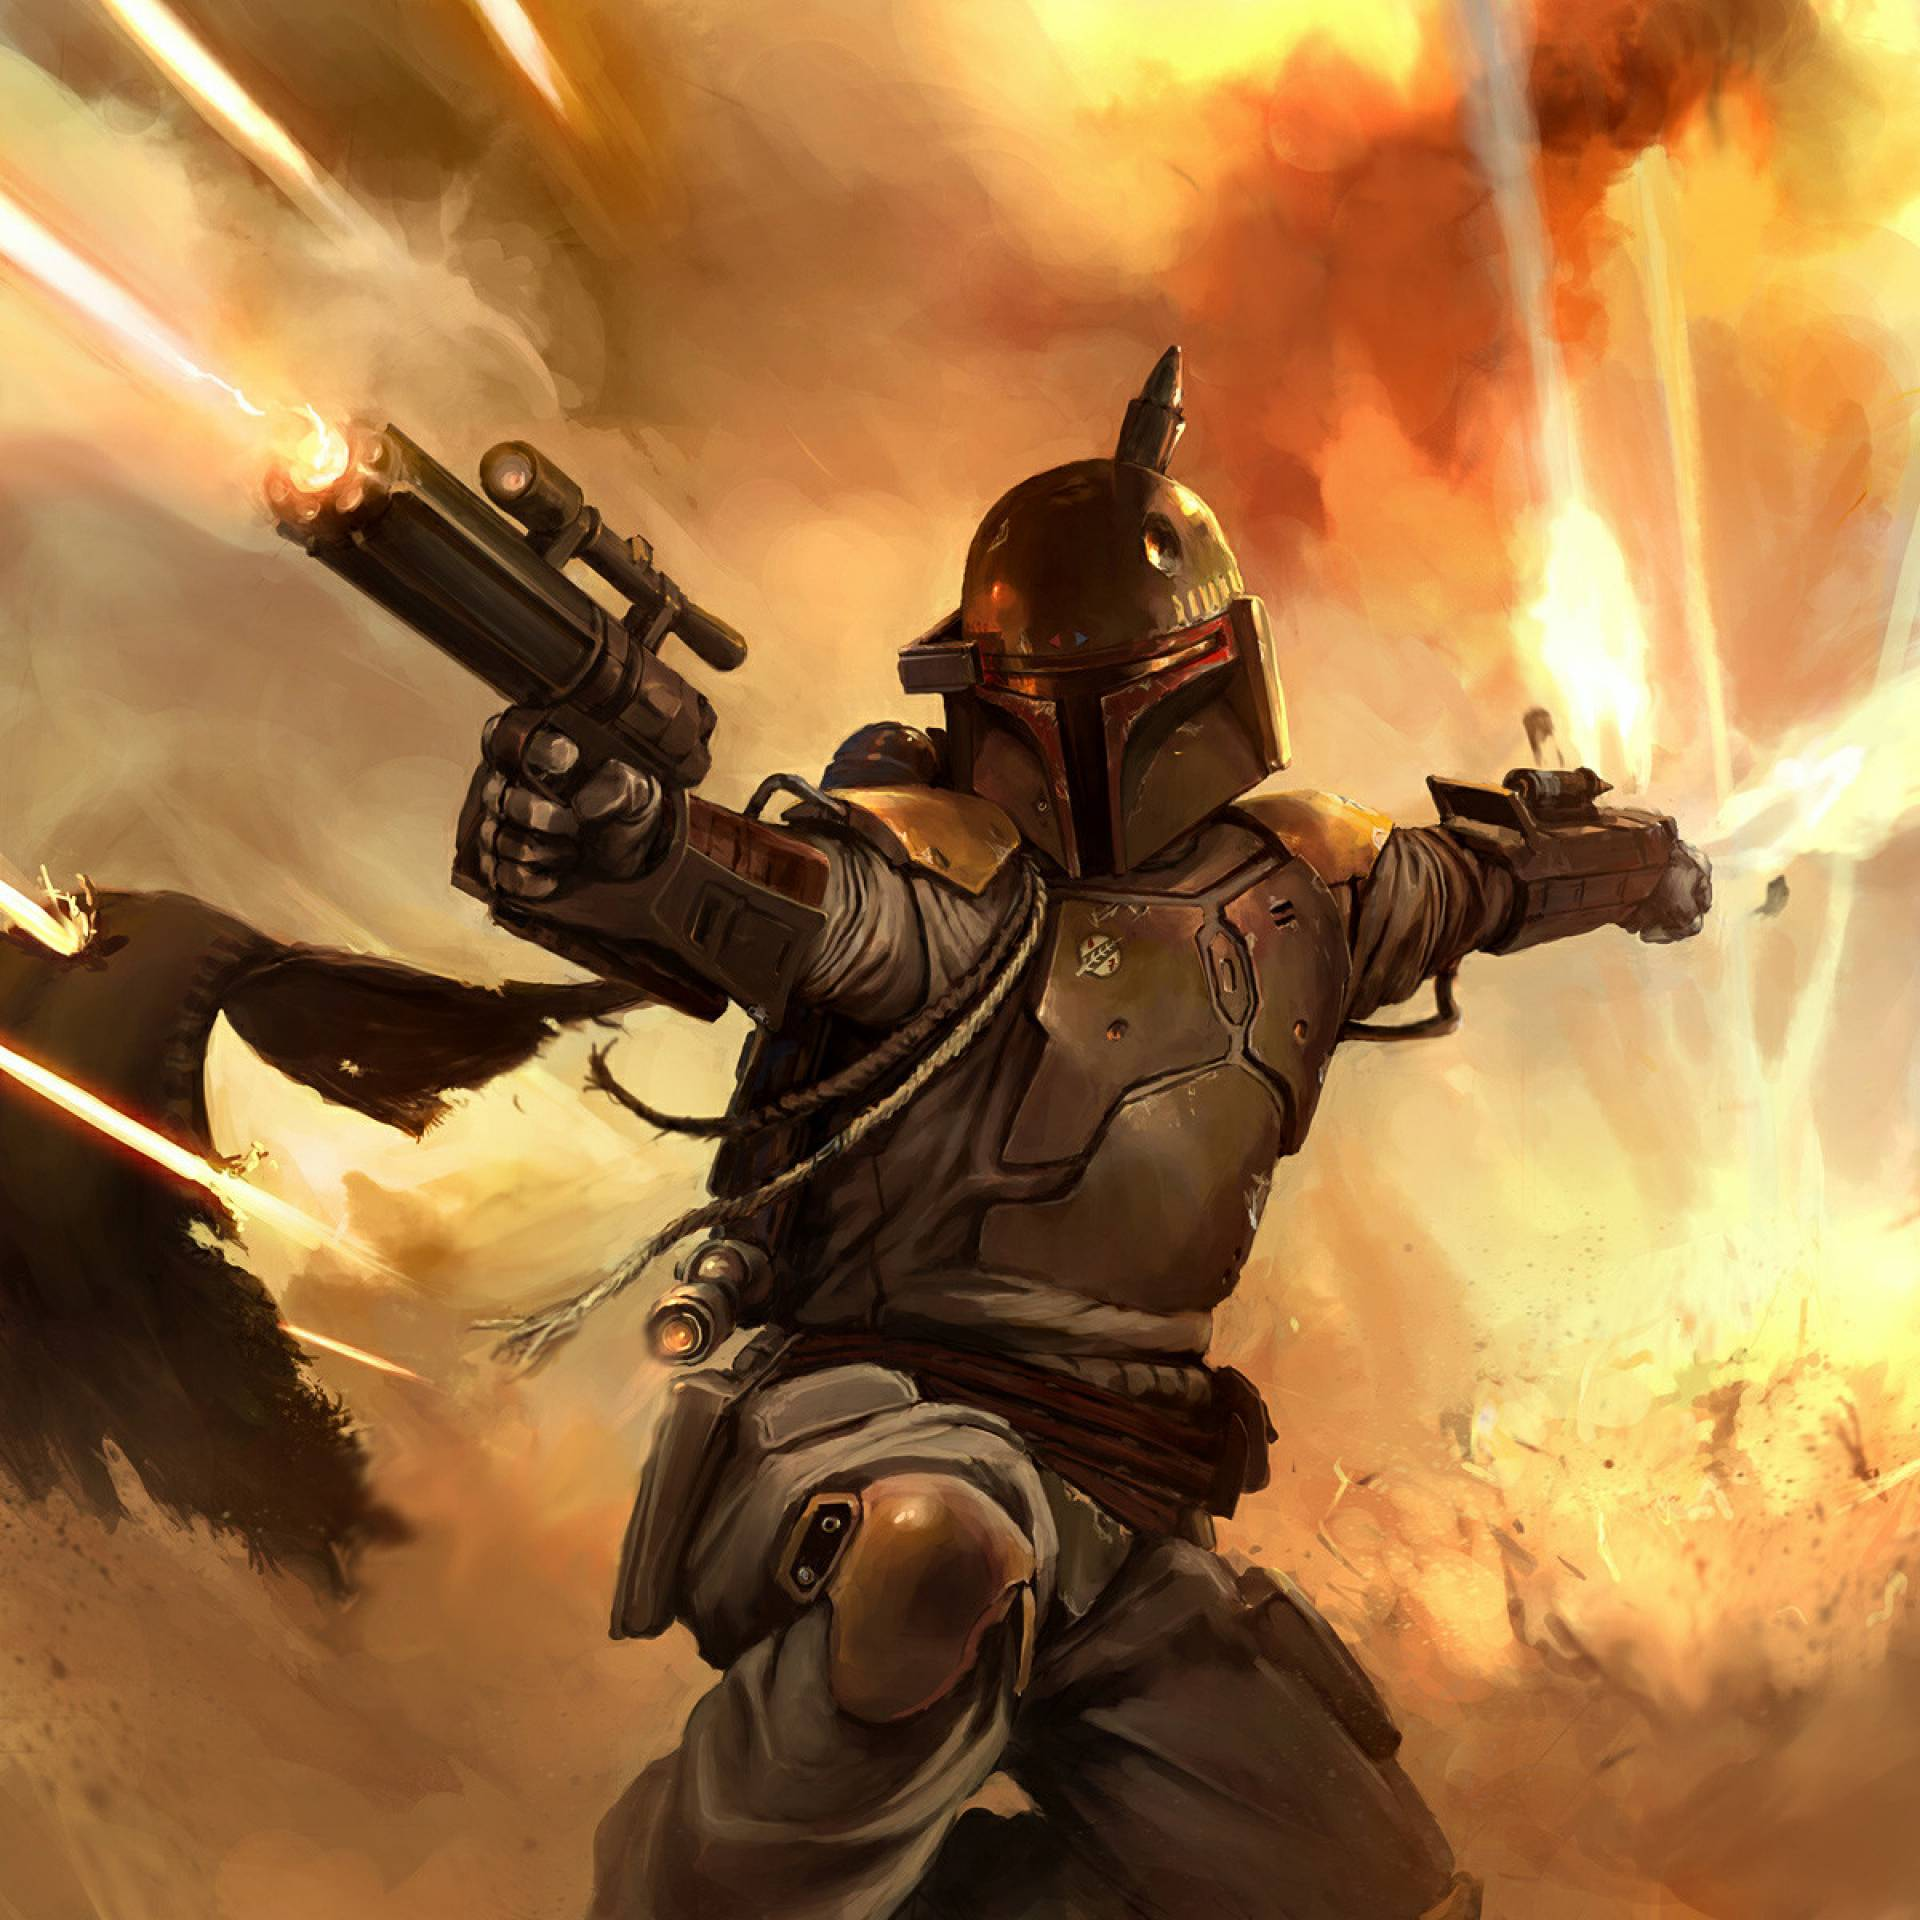 Star Wars Rumor Boba Fett Spinoff Puts New Character In